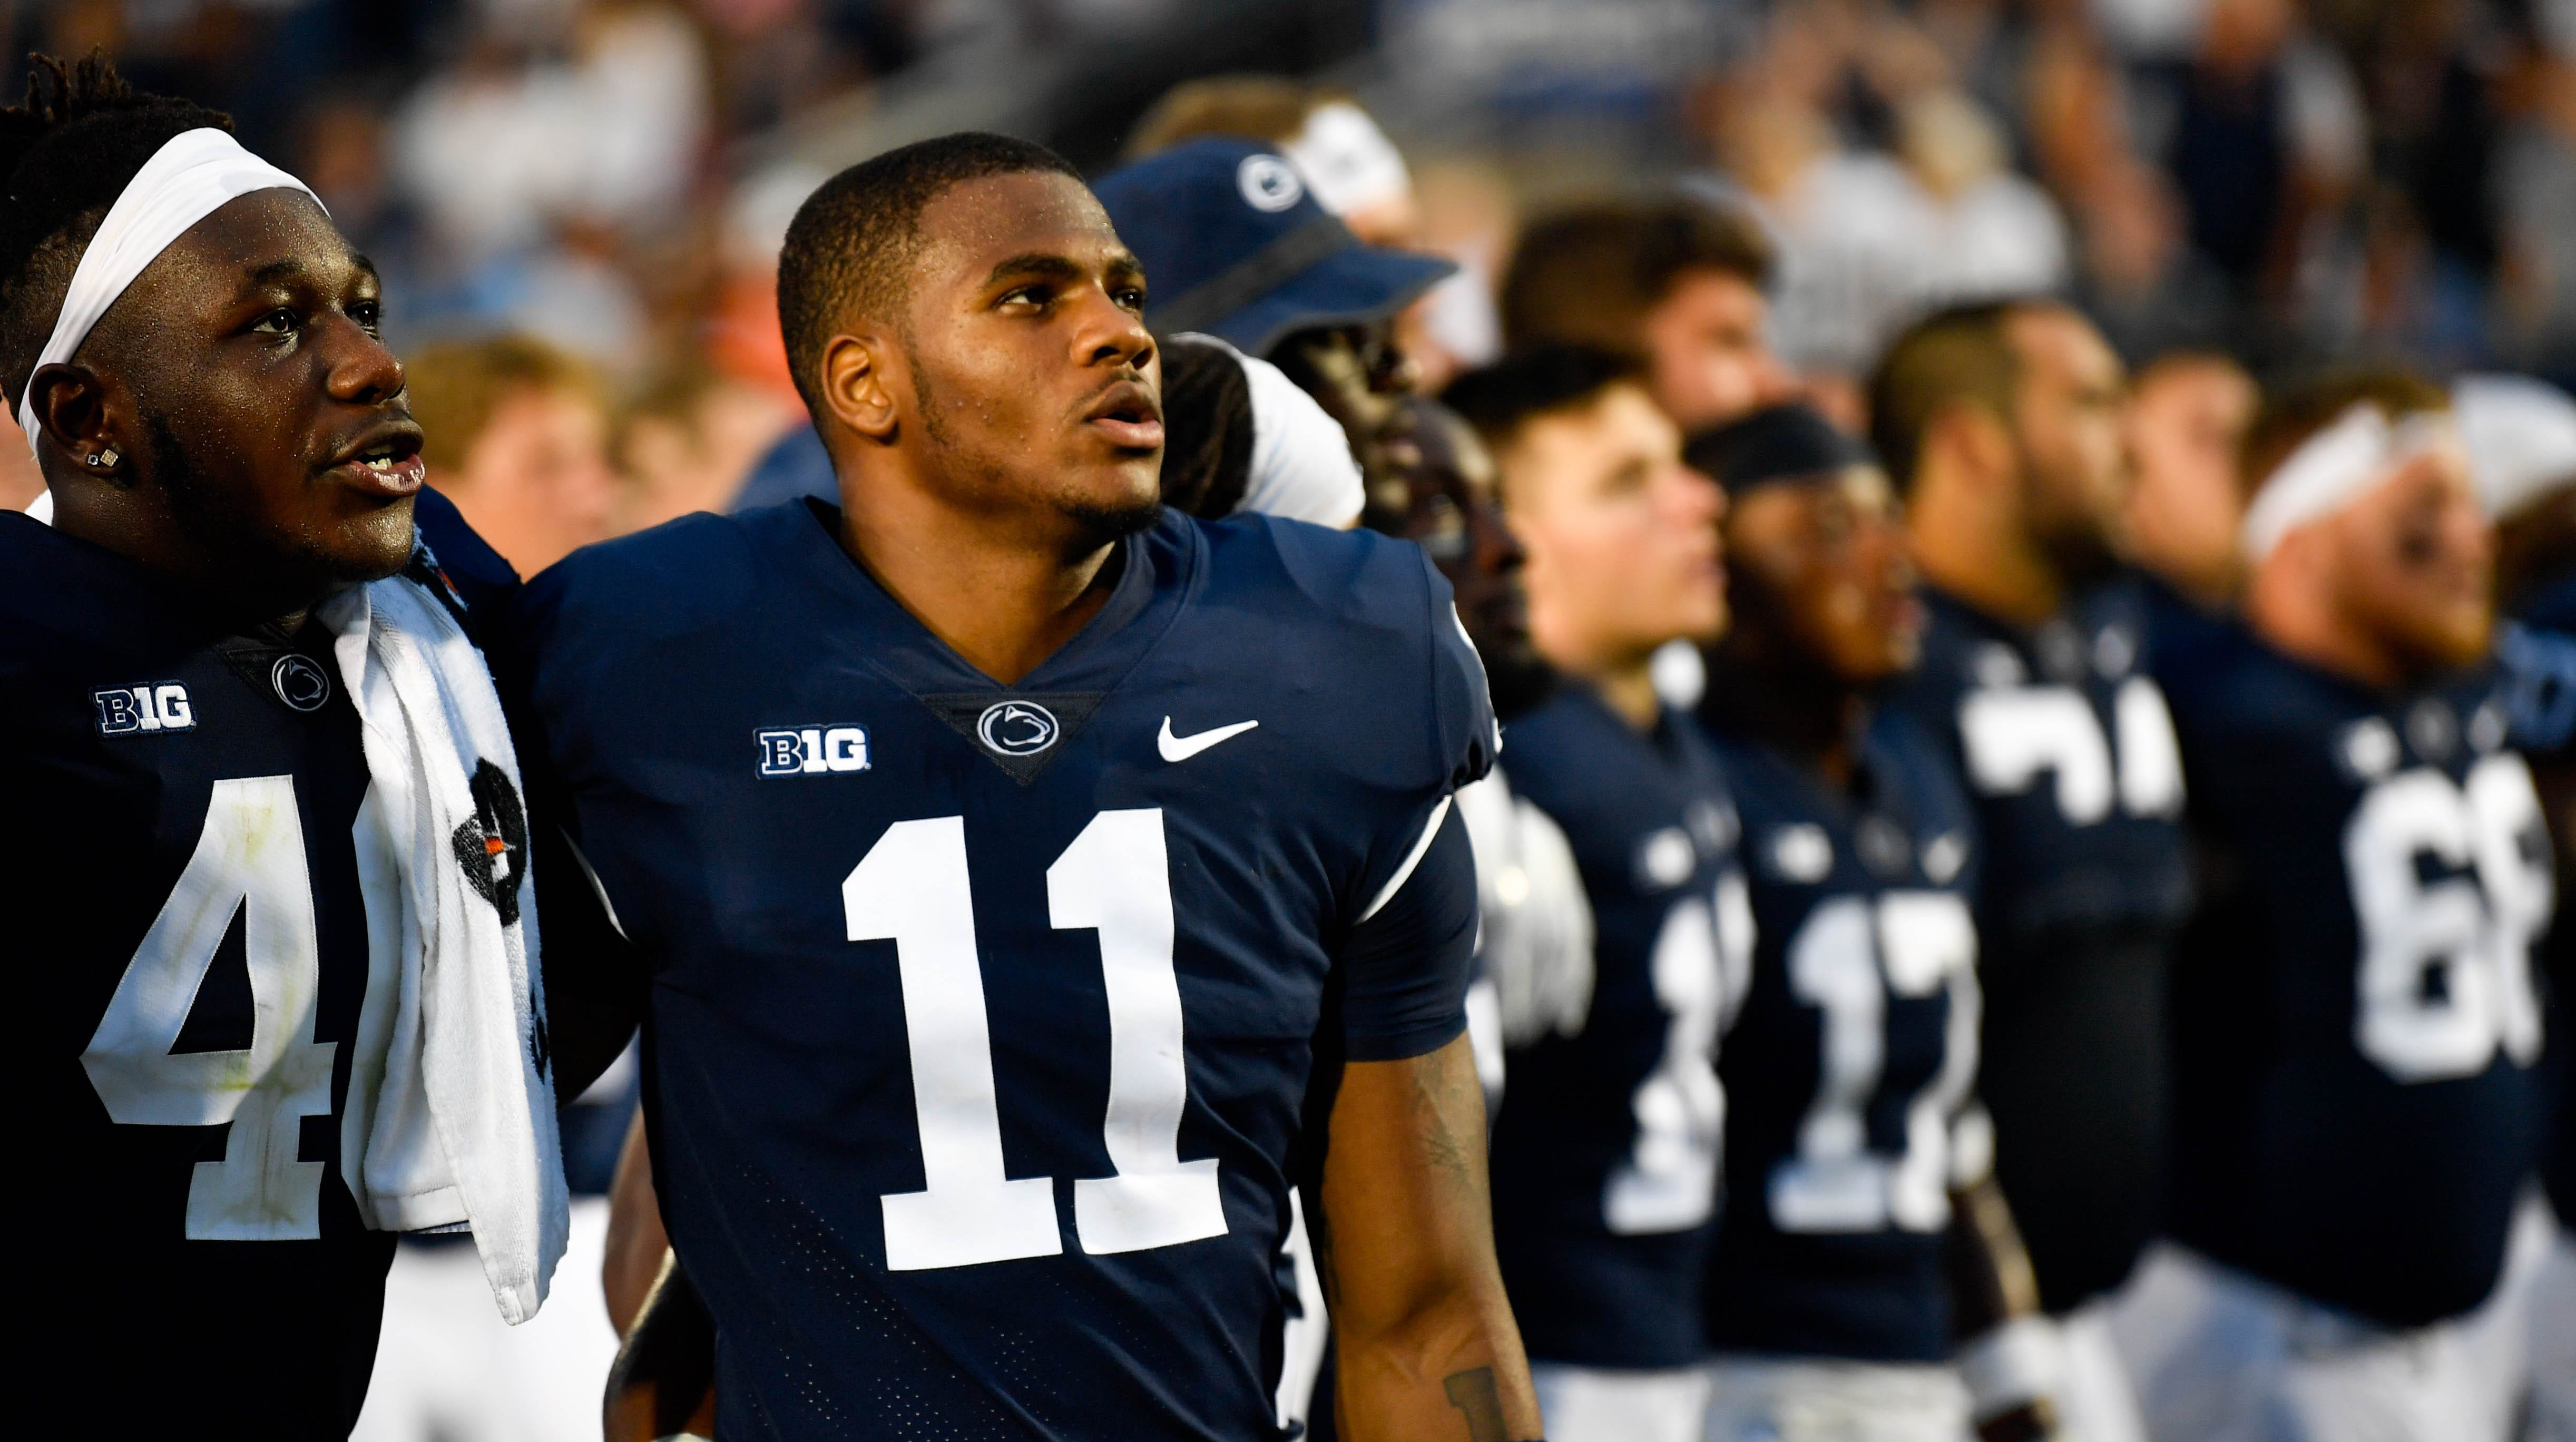 Micah Parsons Watch: Rookie produces big again as Penn State runs over Kent State